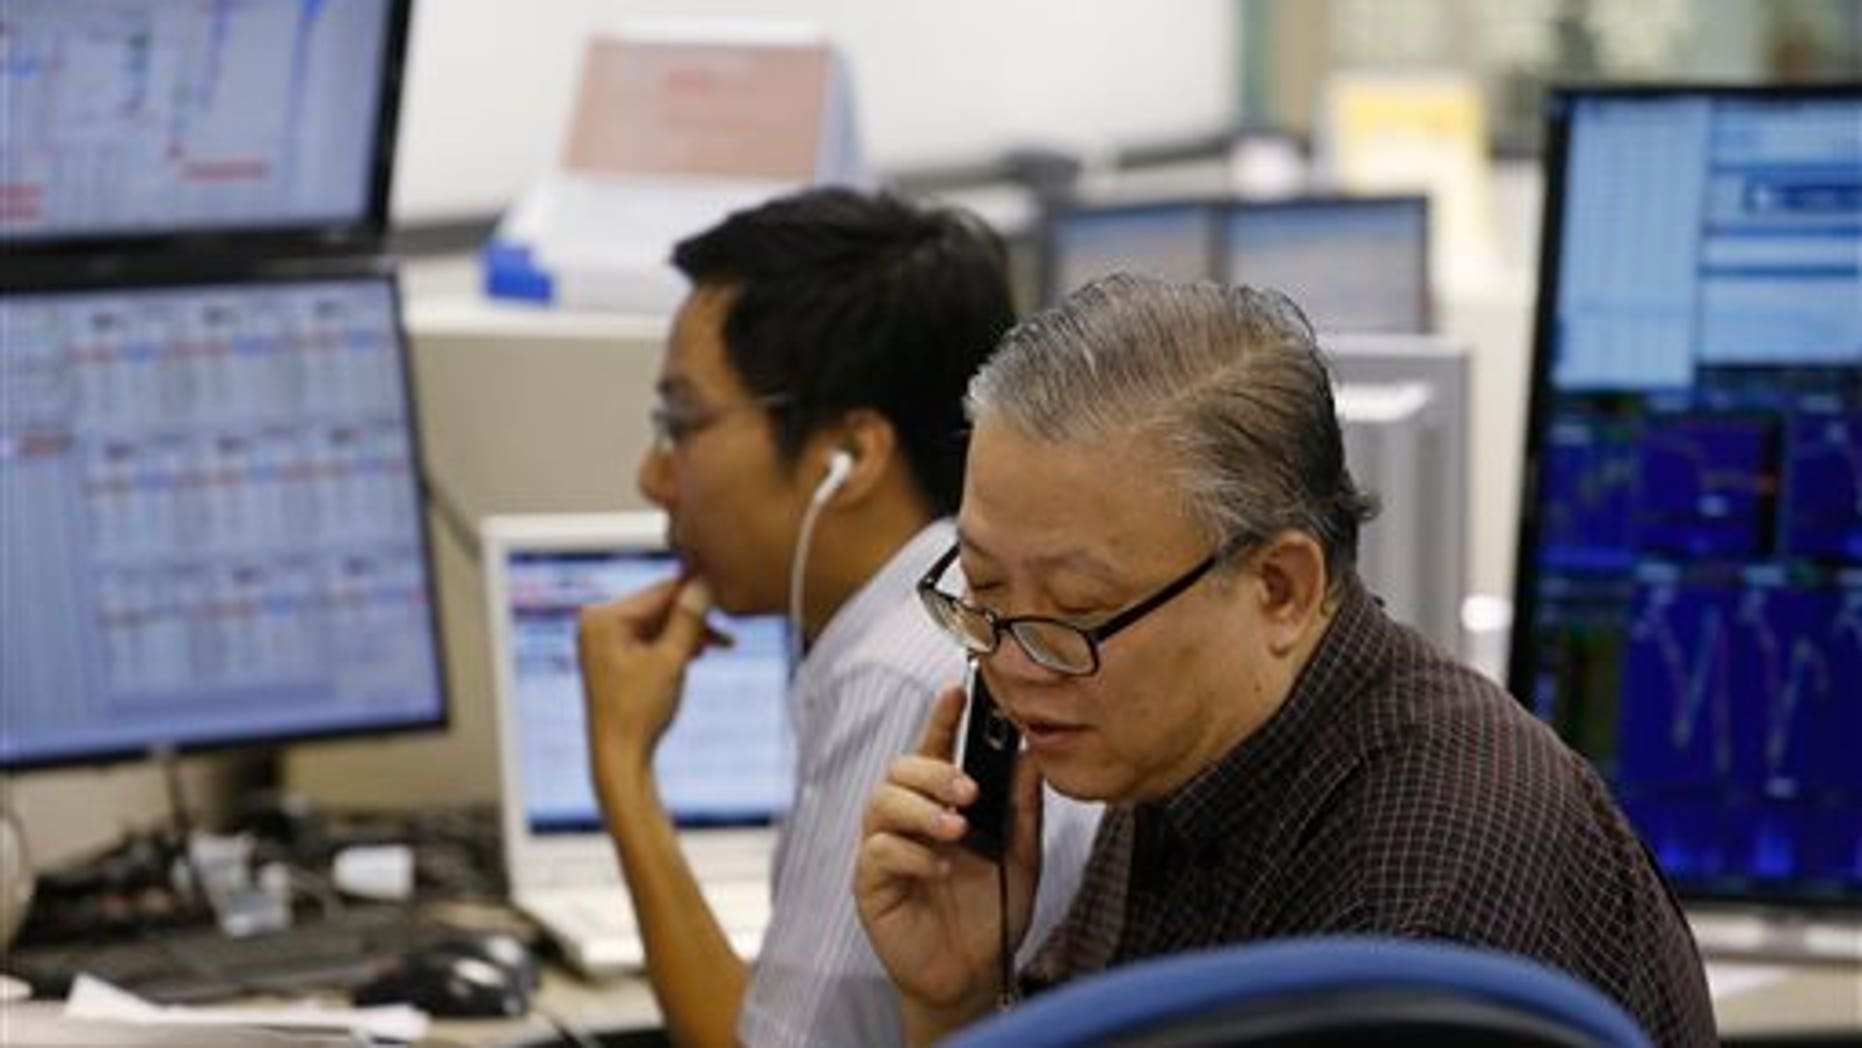 A broker talks on phone at a brokerage firm in Hong Kong, Wednesday, July 8, 2015.